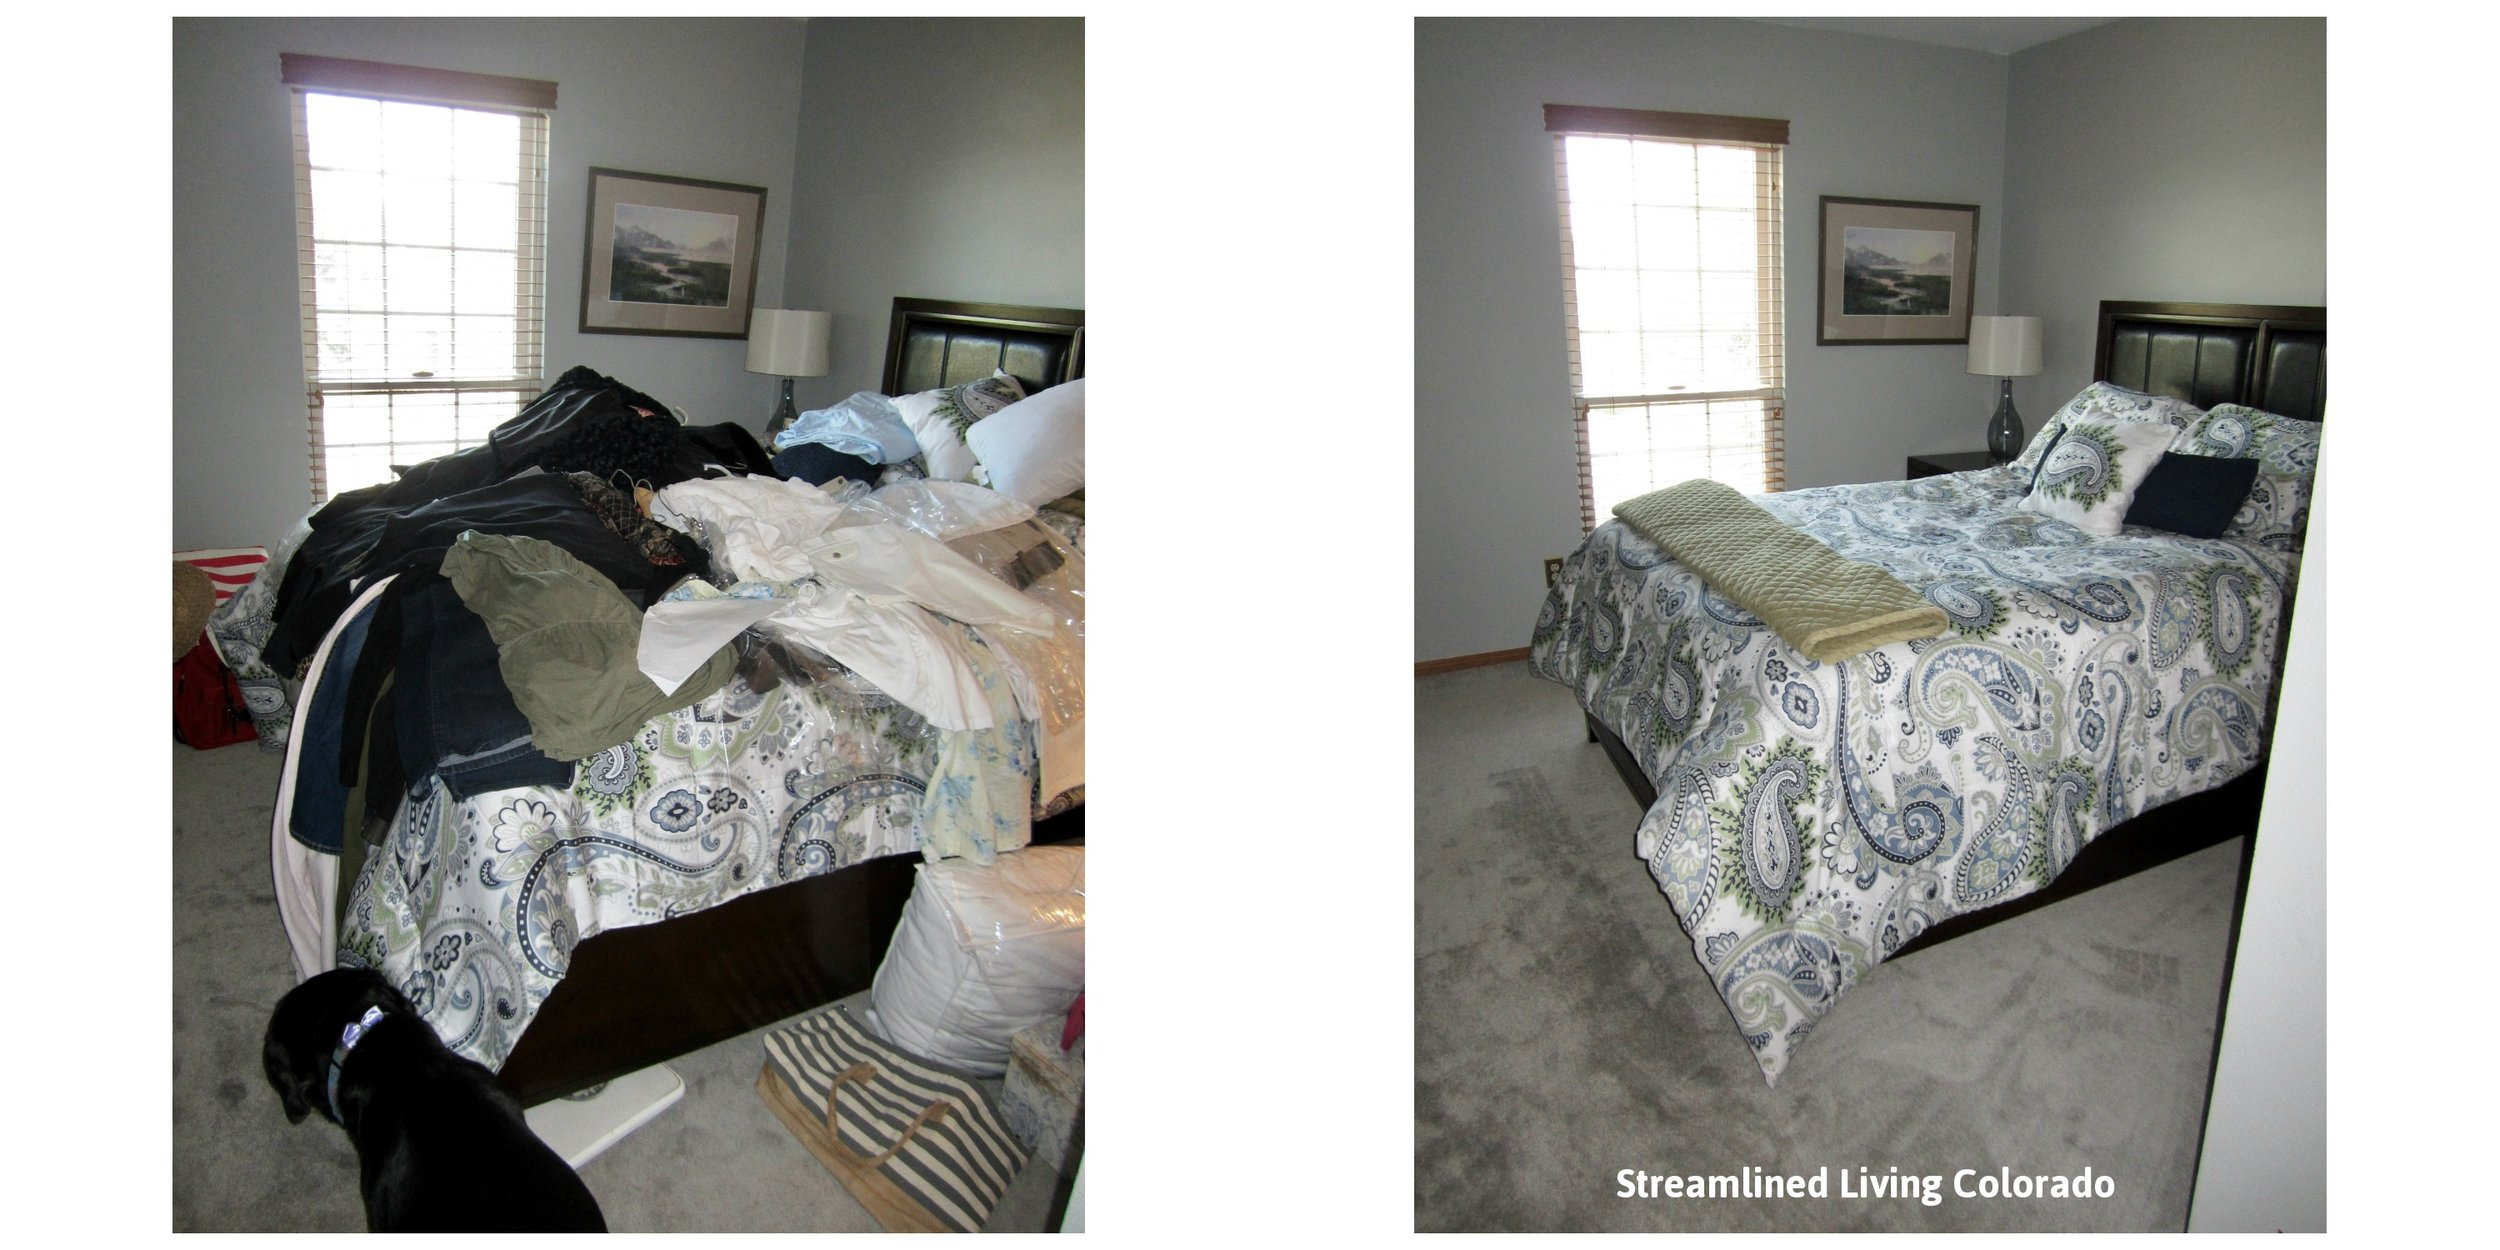 Castle Pines Guest Room 1 signed reorganized organized professional organizer purged purge donate donations Streamlined Living Colorado.jpg